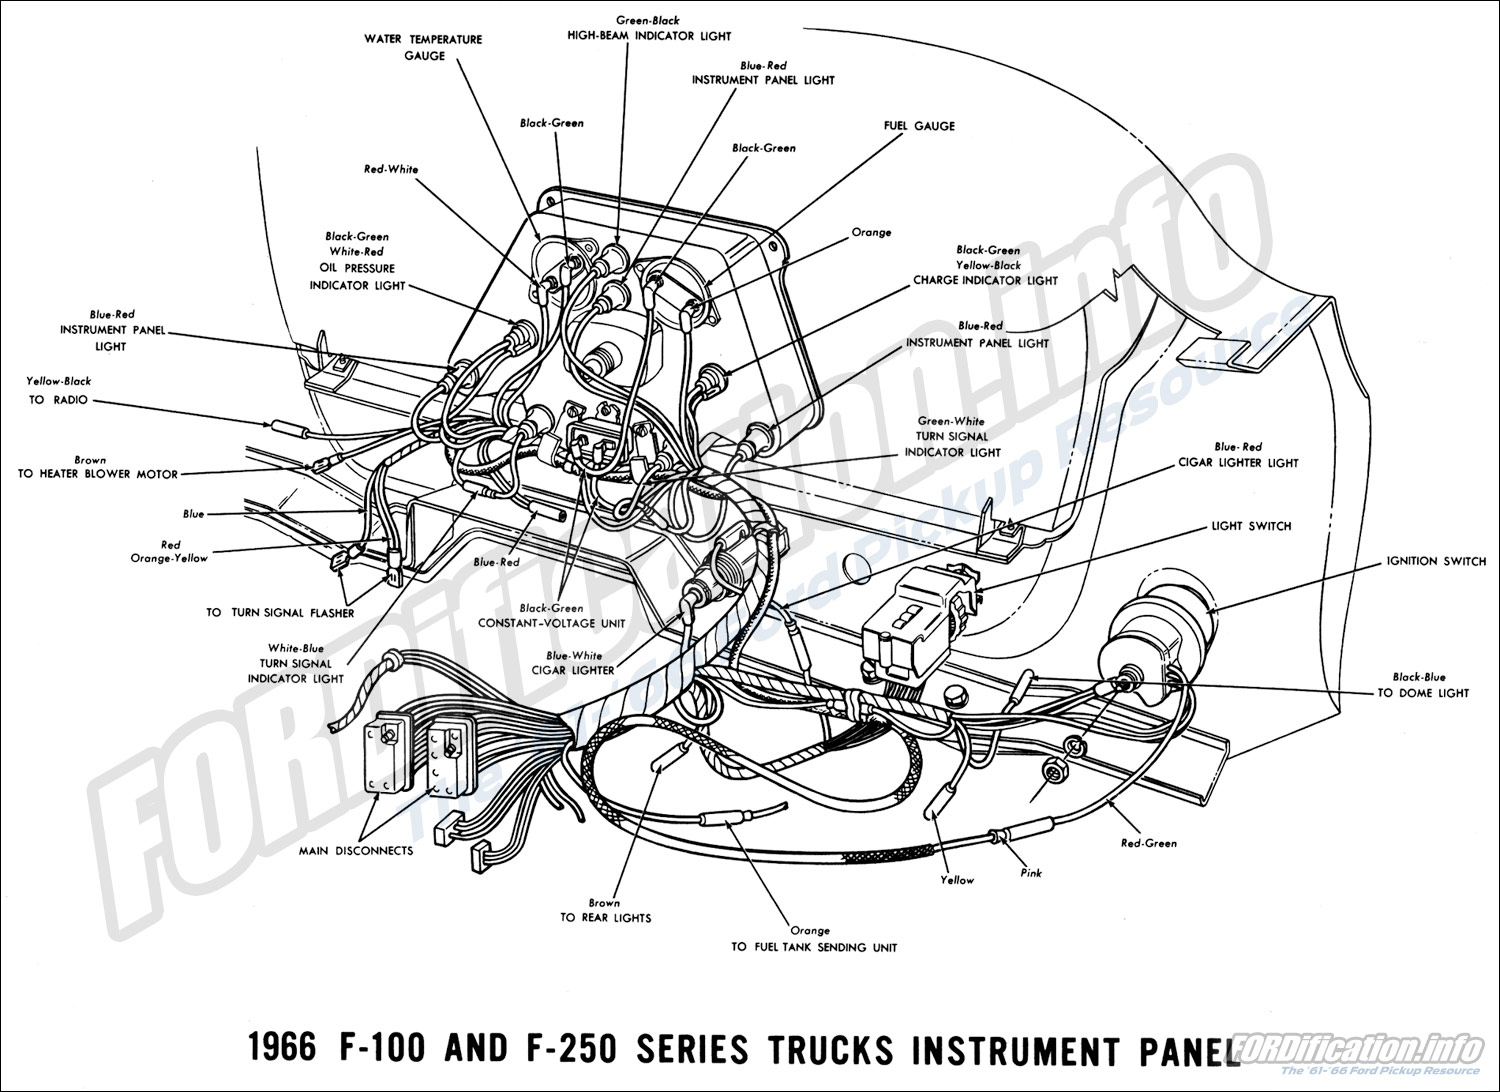 [CSDW_4250]   DIAGRAM] Wiring Diagram For 1966 Ford F100 FULL Version HD Quality Ford  F100 - LZ1AQSCHEMATIC1482.CONCESSIONARIABELOGISENIGALLIA.IT | 1966 Ford Truck Wiring Diagram |  | concessionariabelogisenigallia.it